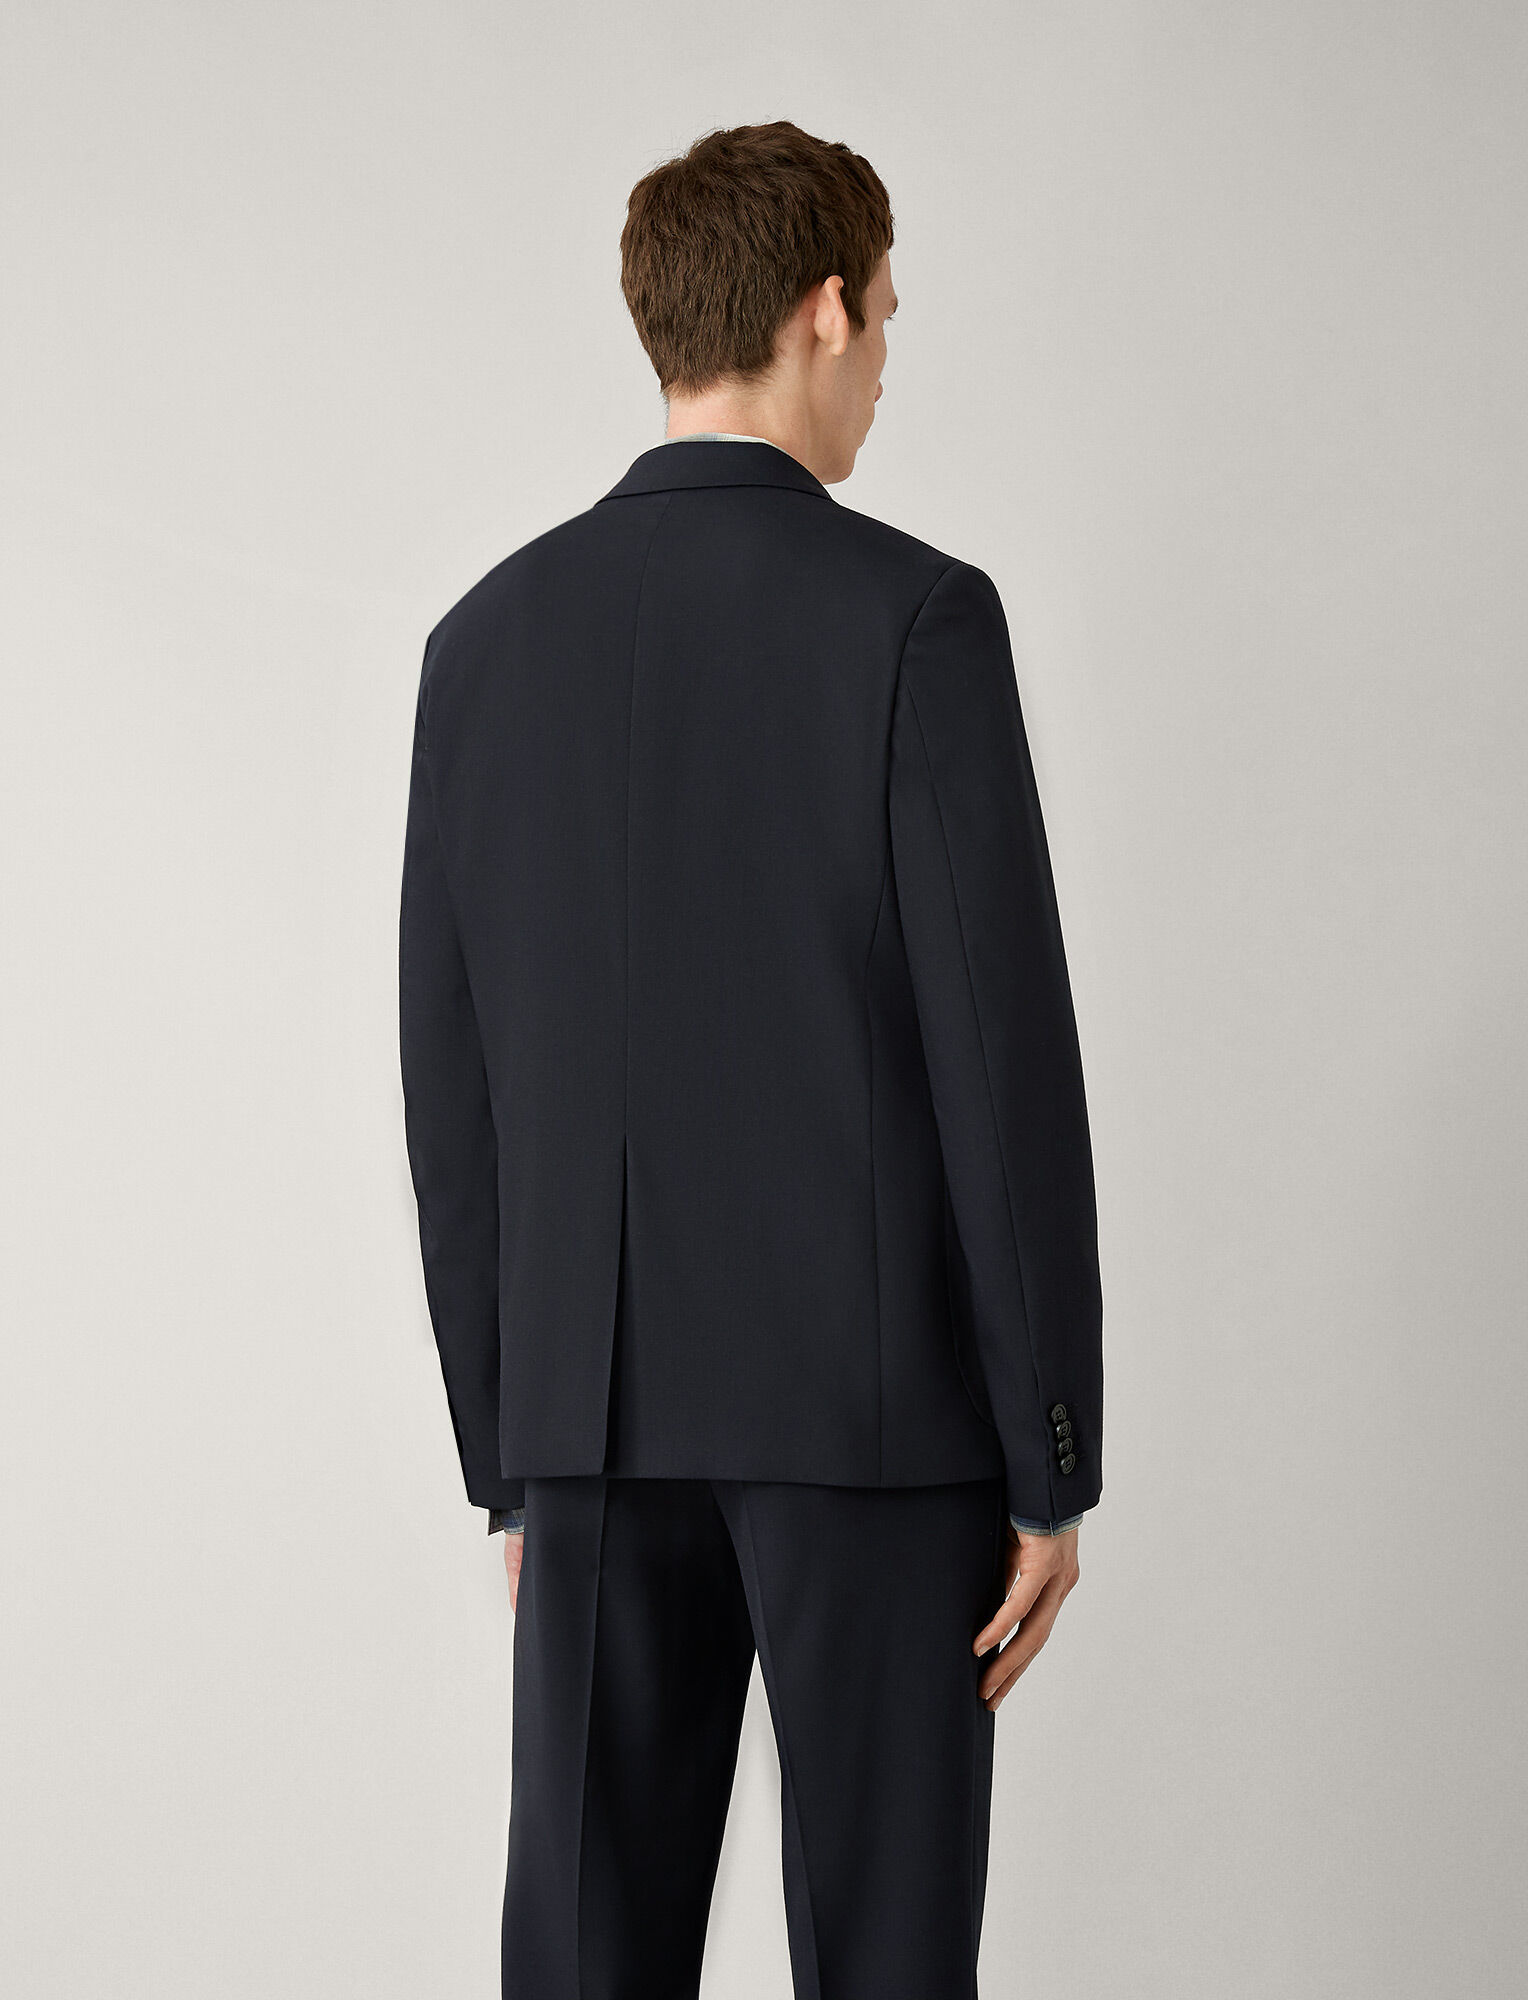 Joseph, Cassels Fine Comfort Wool Jacket, in NAVY